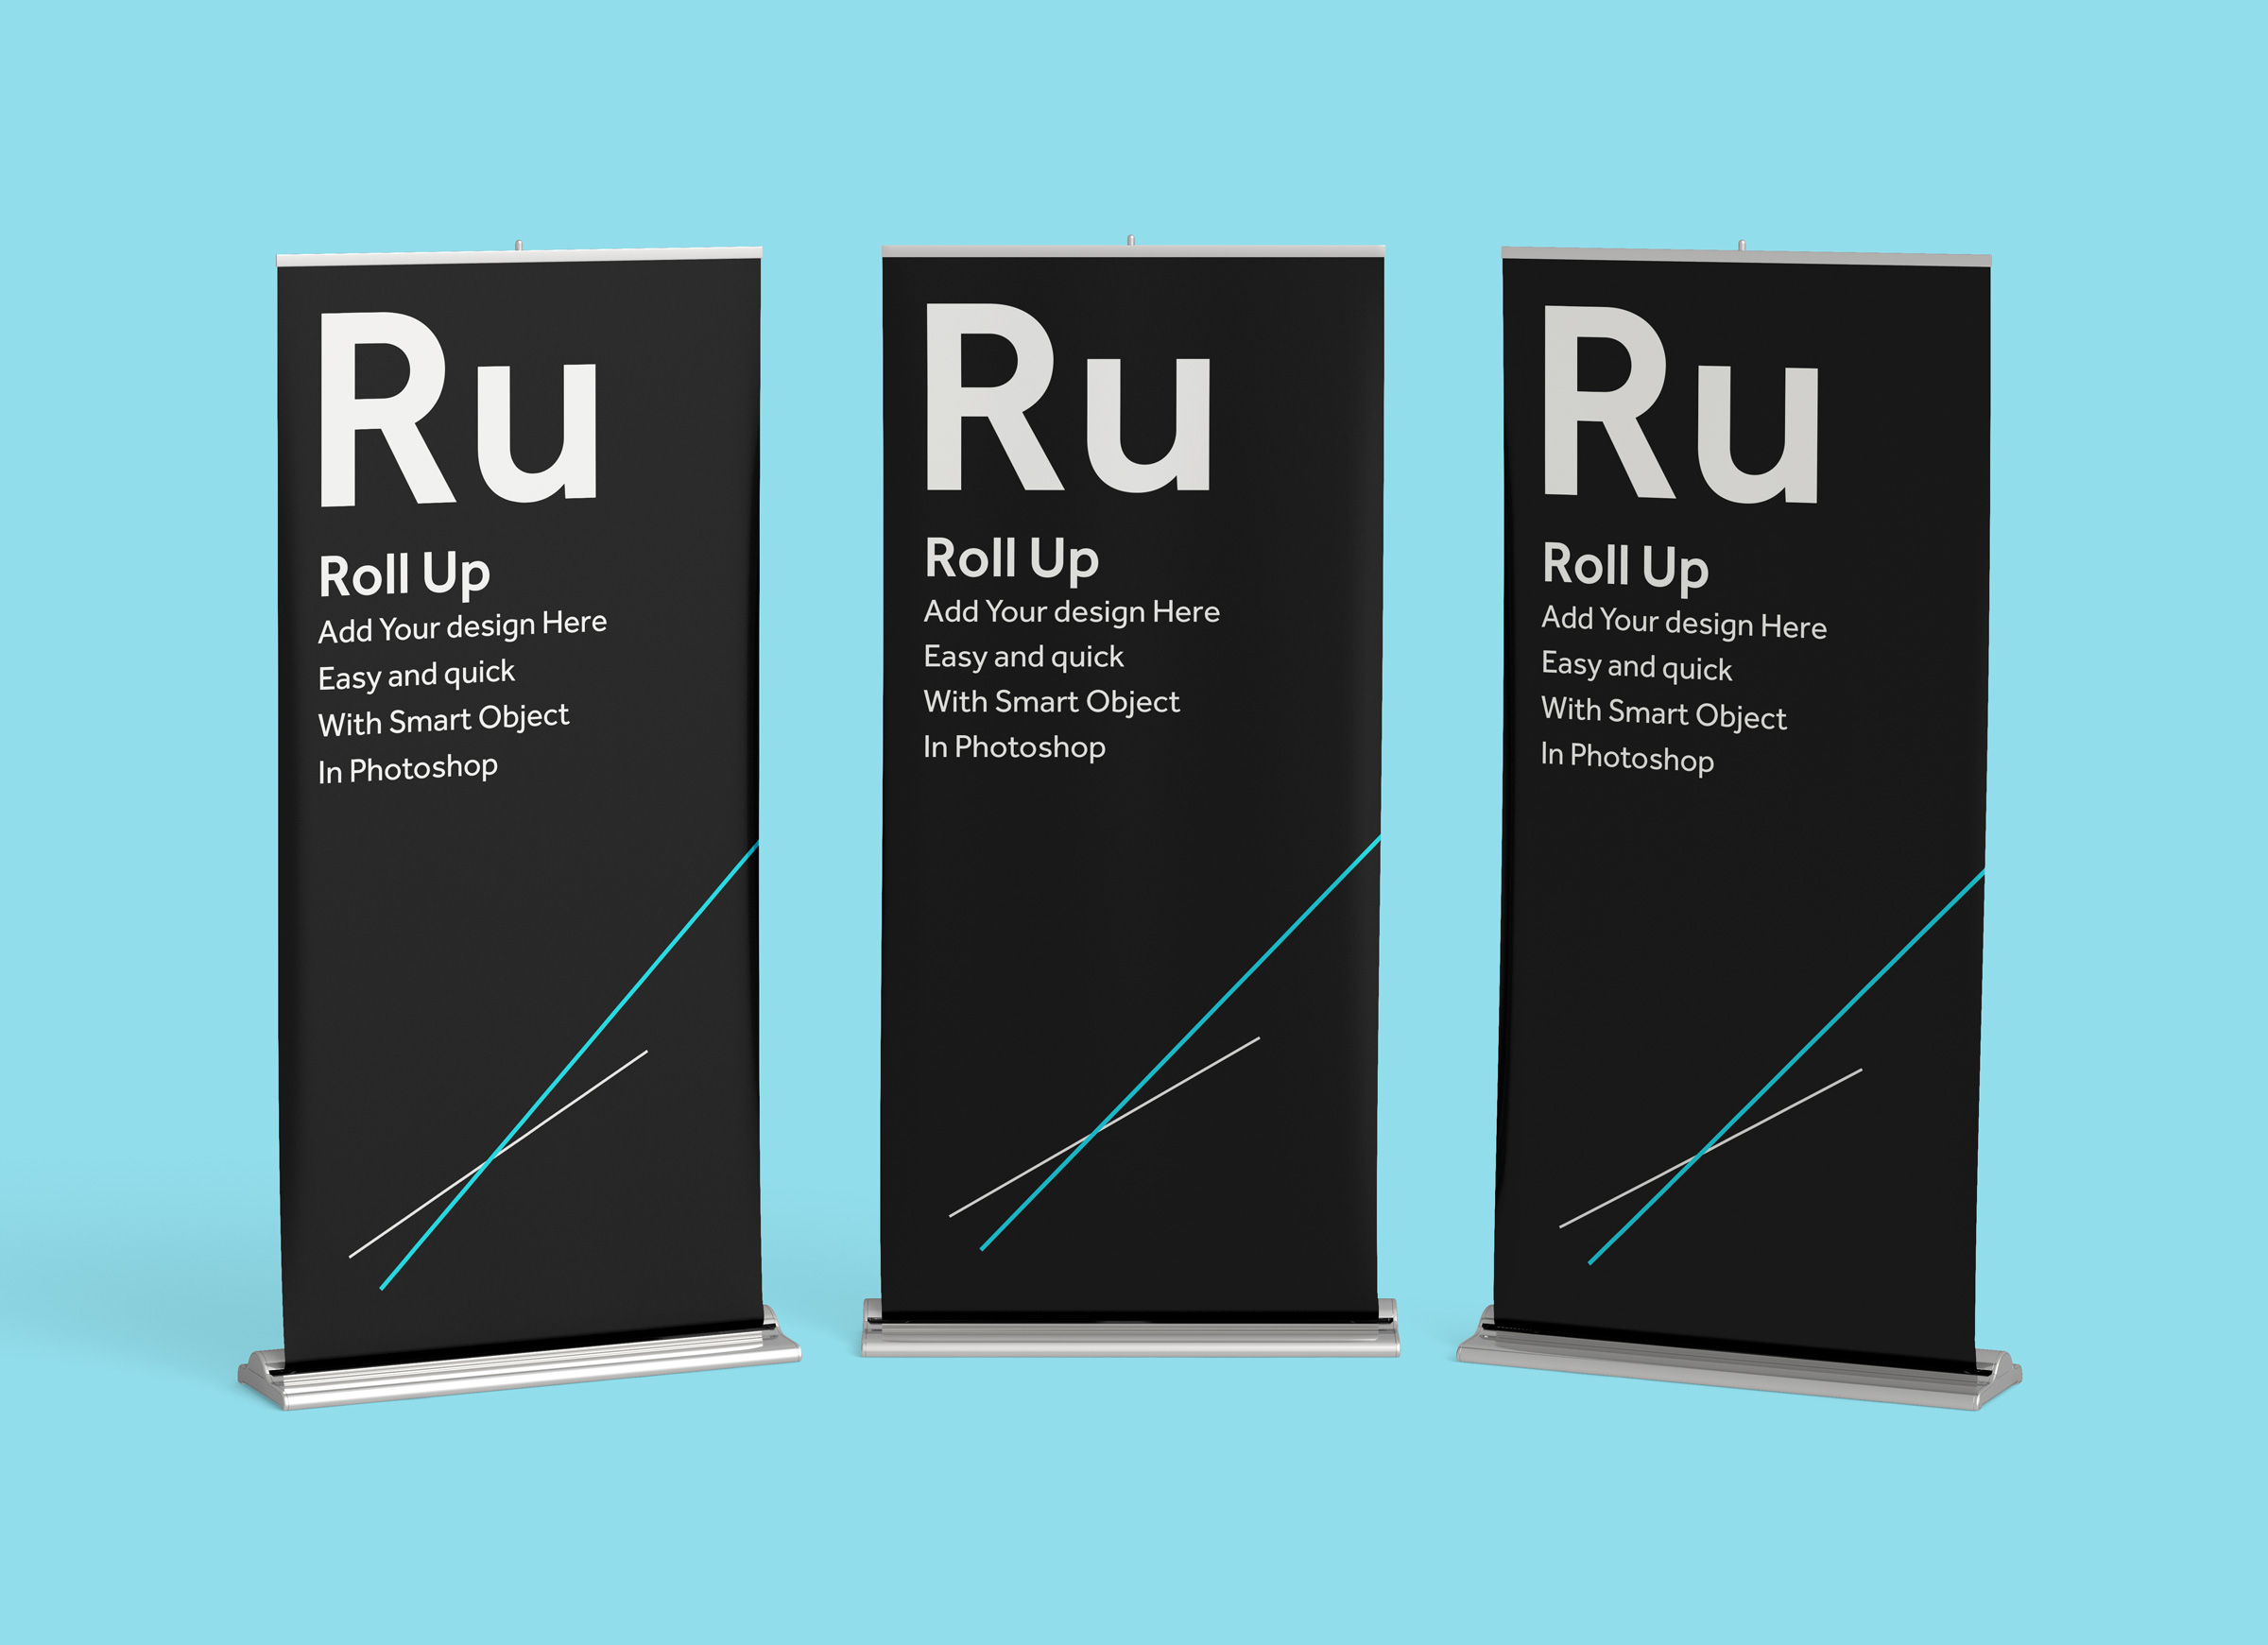 Free-Modern-Roll-Up-Stand-Banner-Mockup-PSD